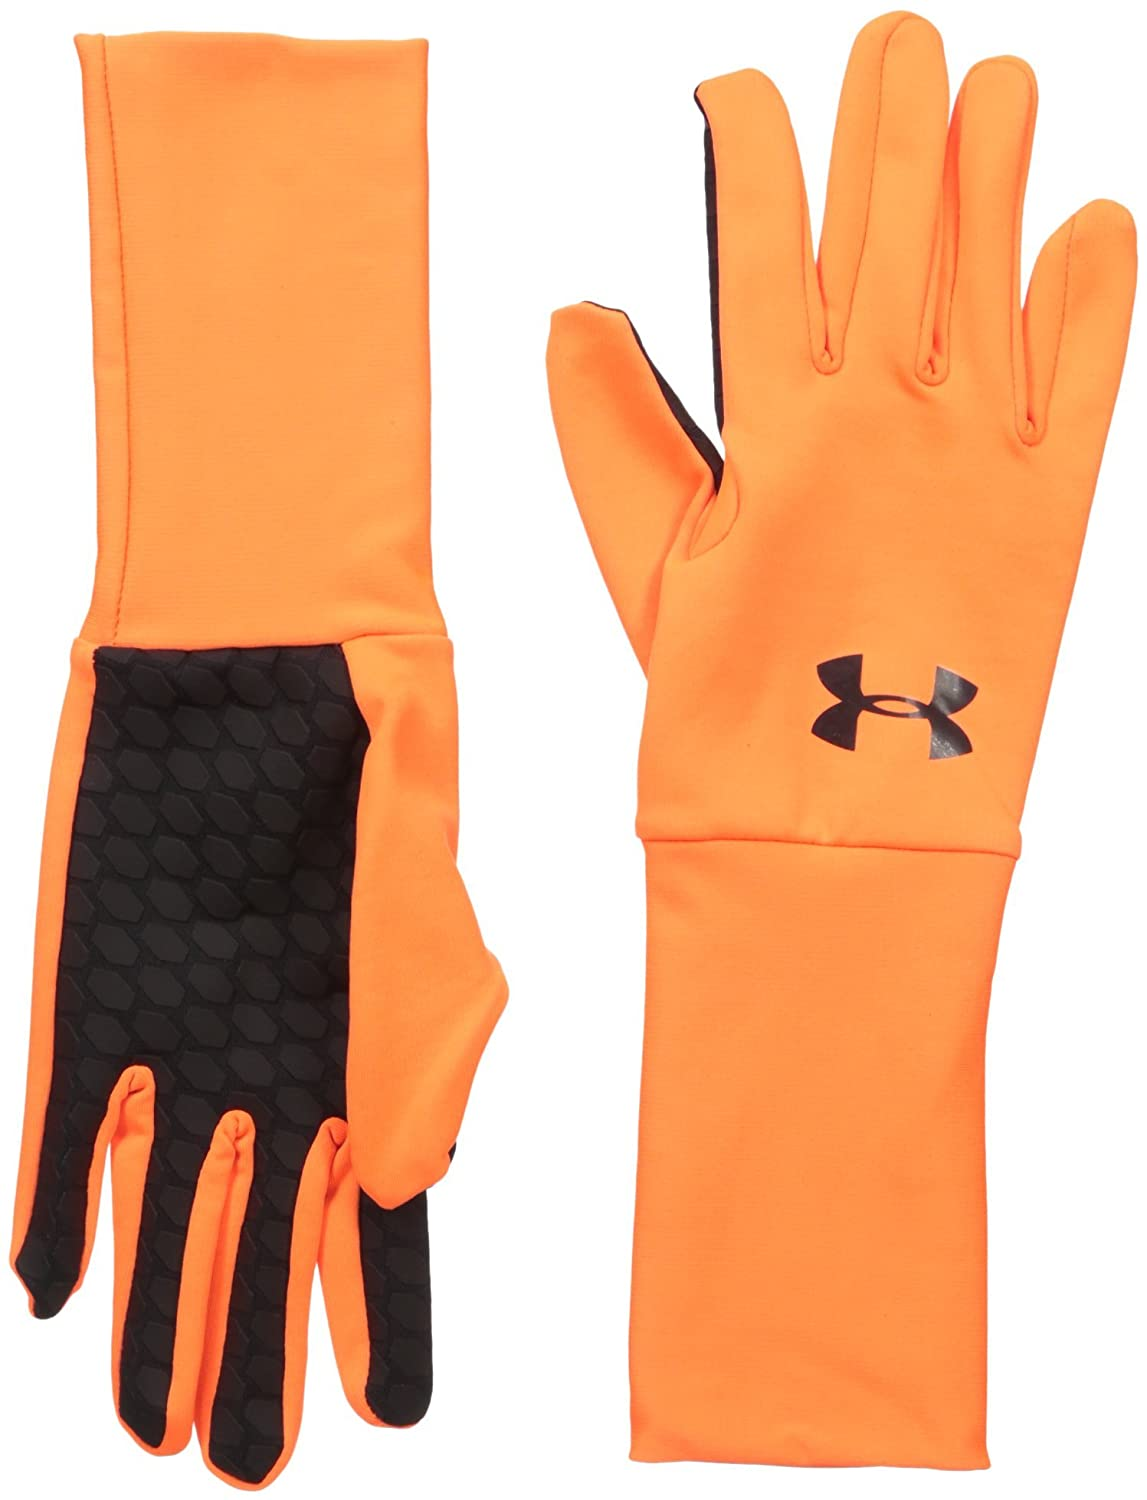 Under Armour Men's ColdGear Liner Under Armour Accessories 1238031